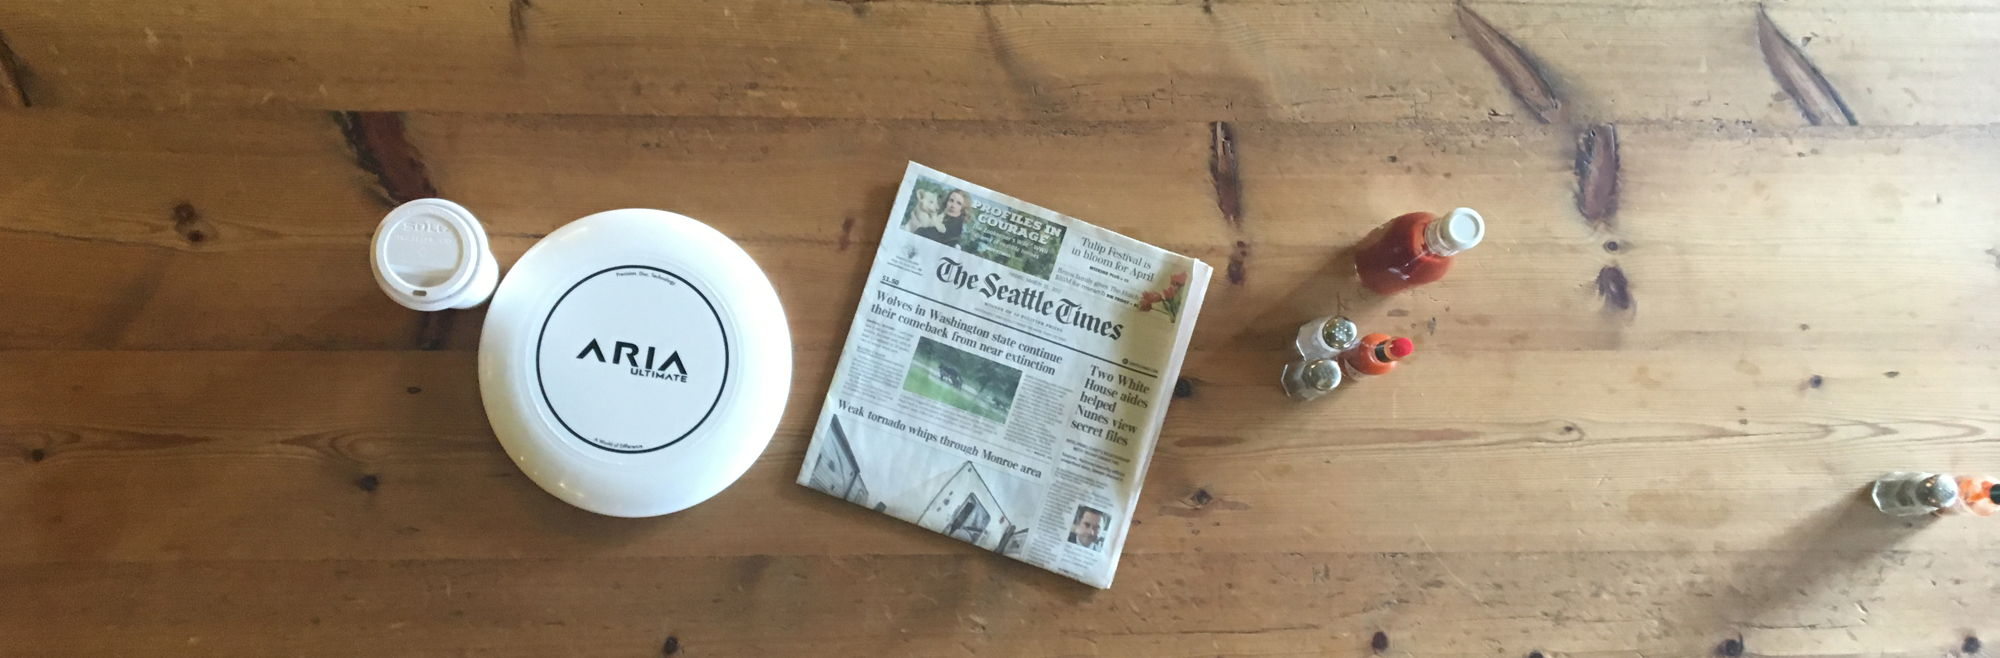 ARIA professional official ultimate flying disc for the sport commonly known as 'ultimate frisbee' aria disc with coffee and newspaper press page (also there's katchup)